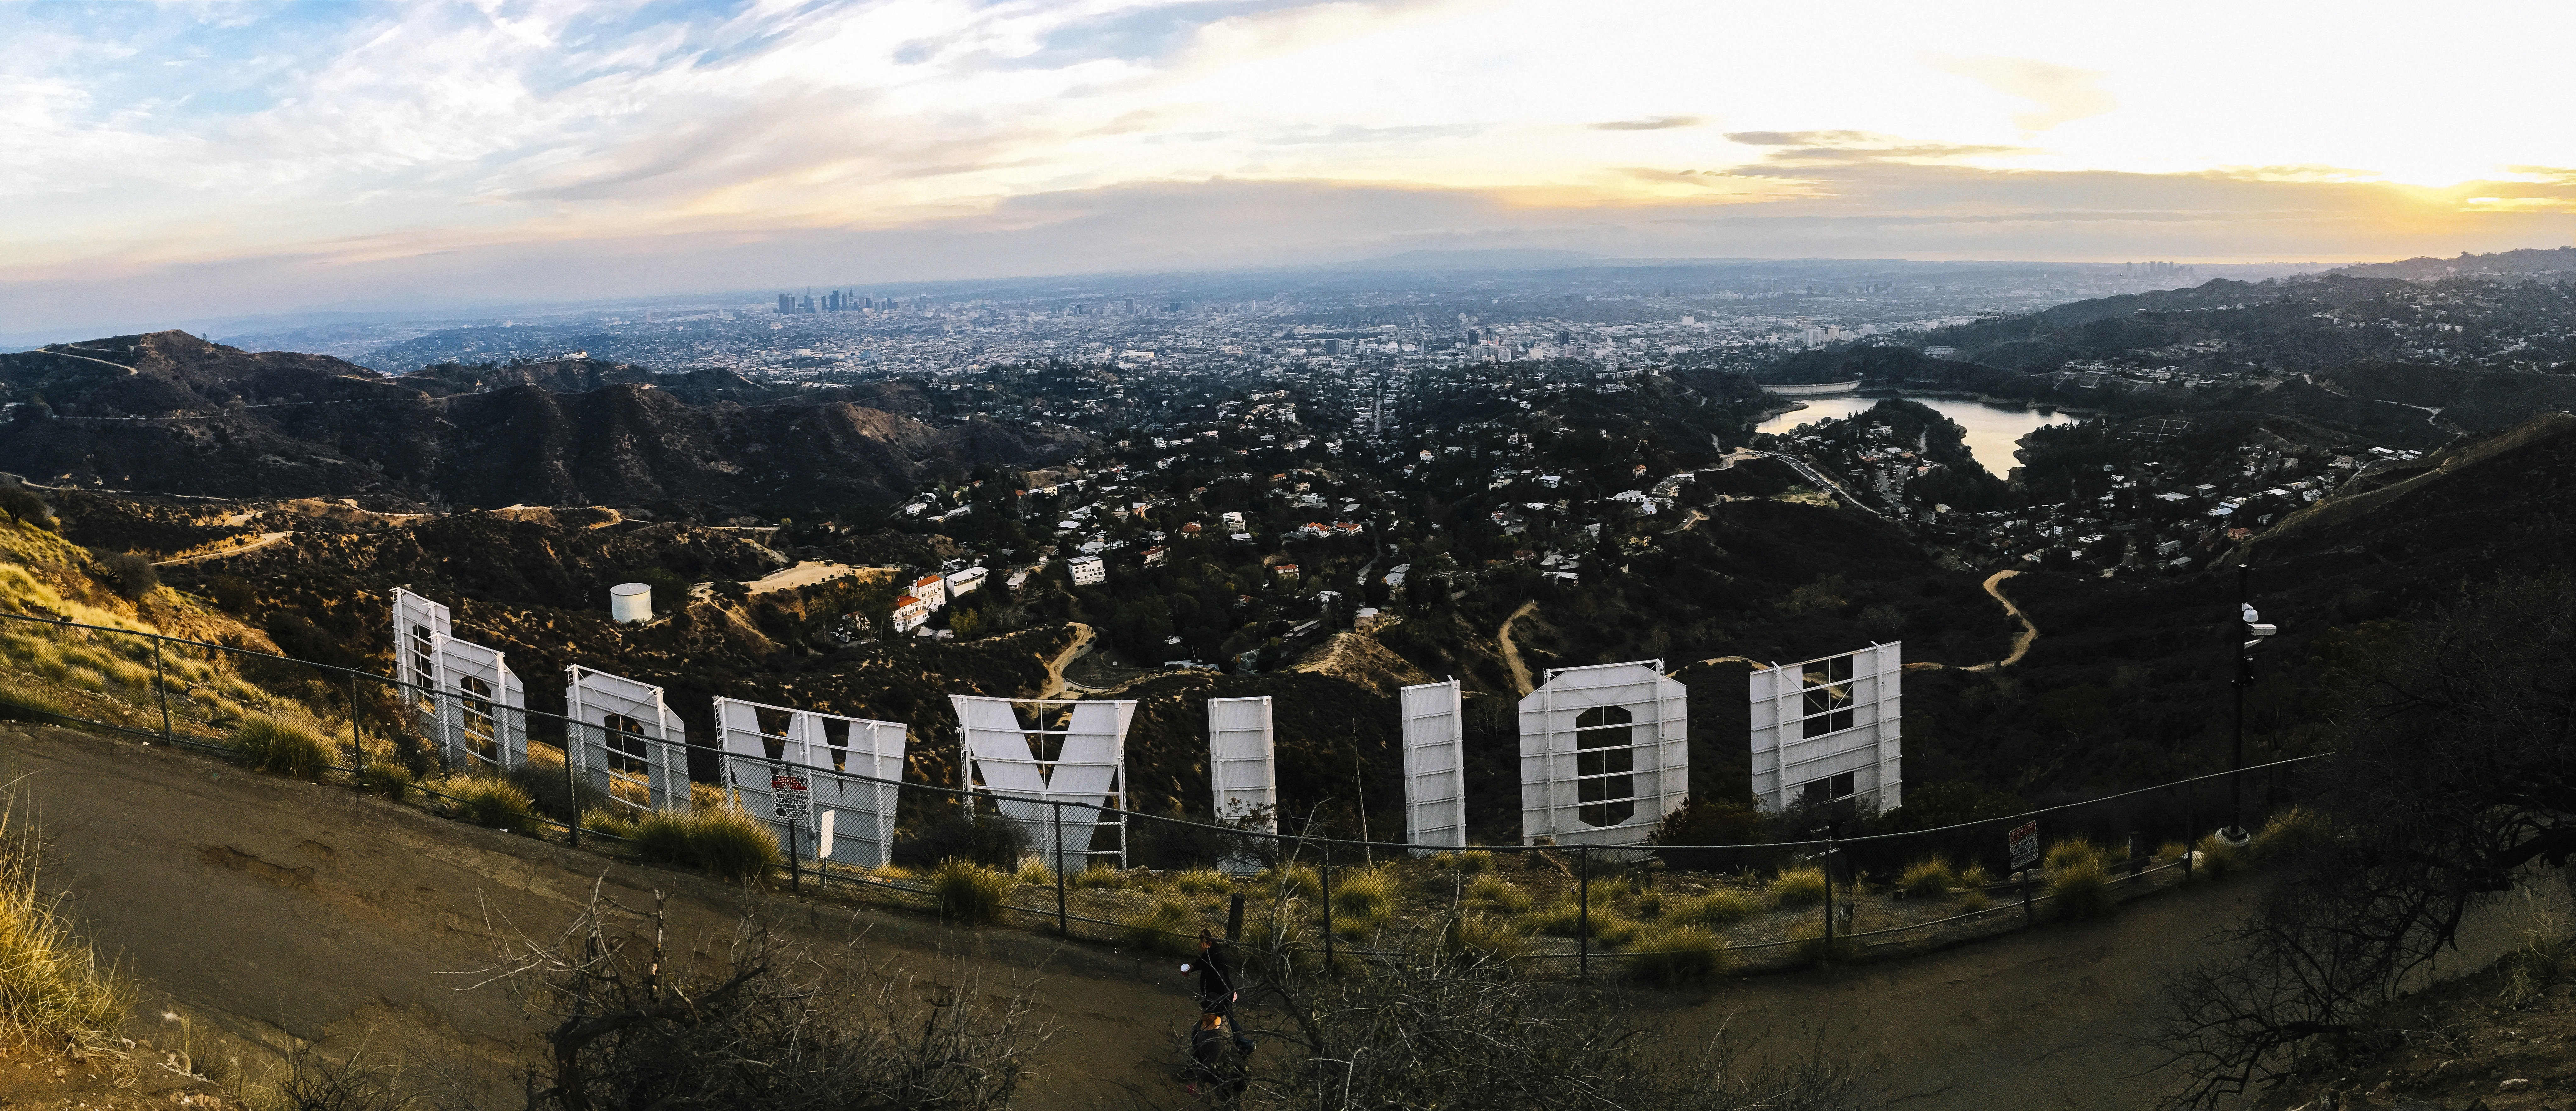 Hollywood Looking Down At Los Angeles California Image Free Stock Photo Public Domain Photo Cc0 Images